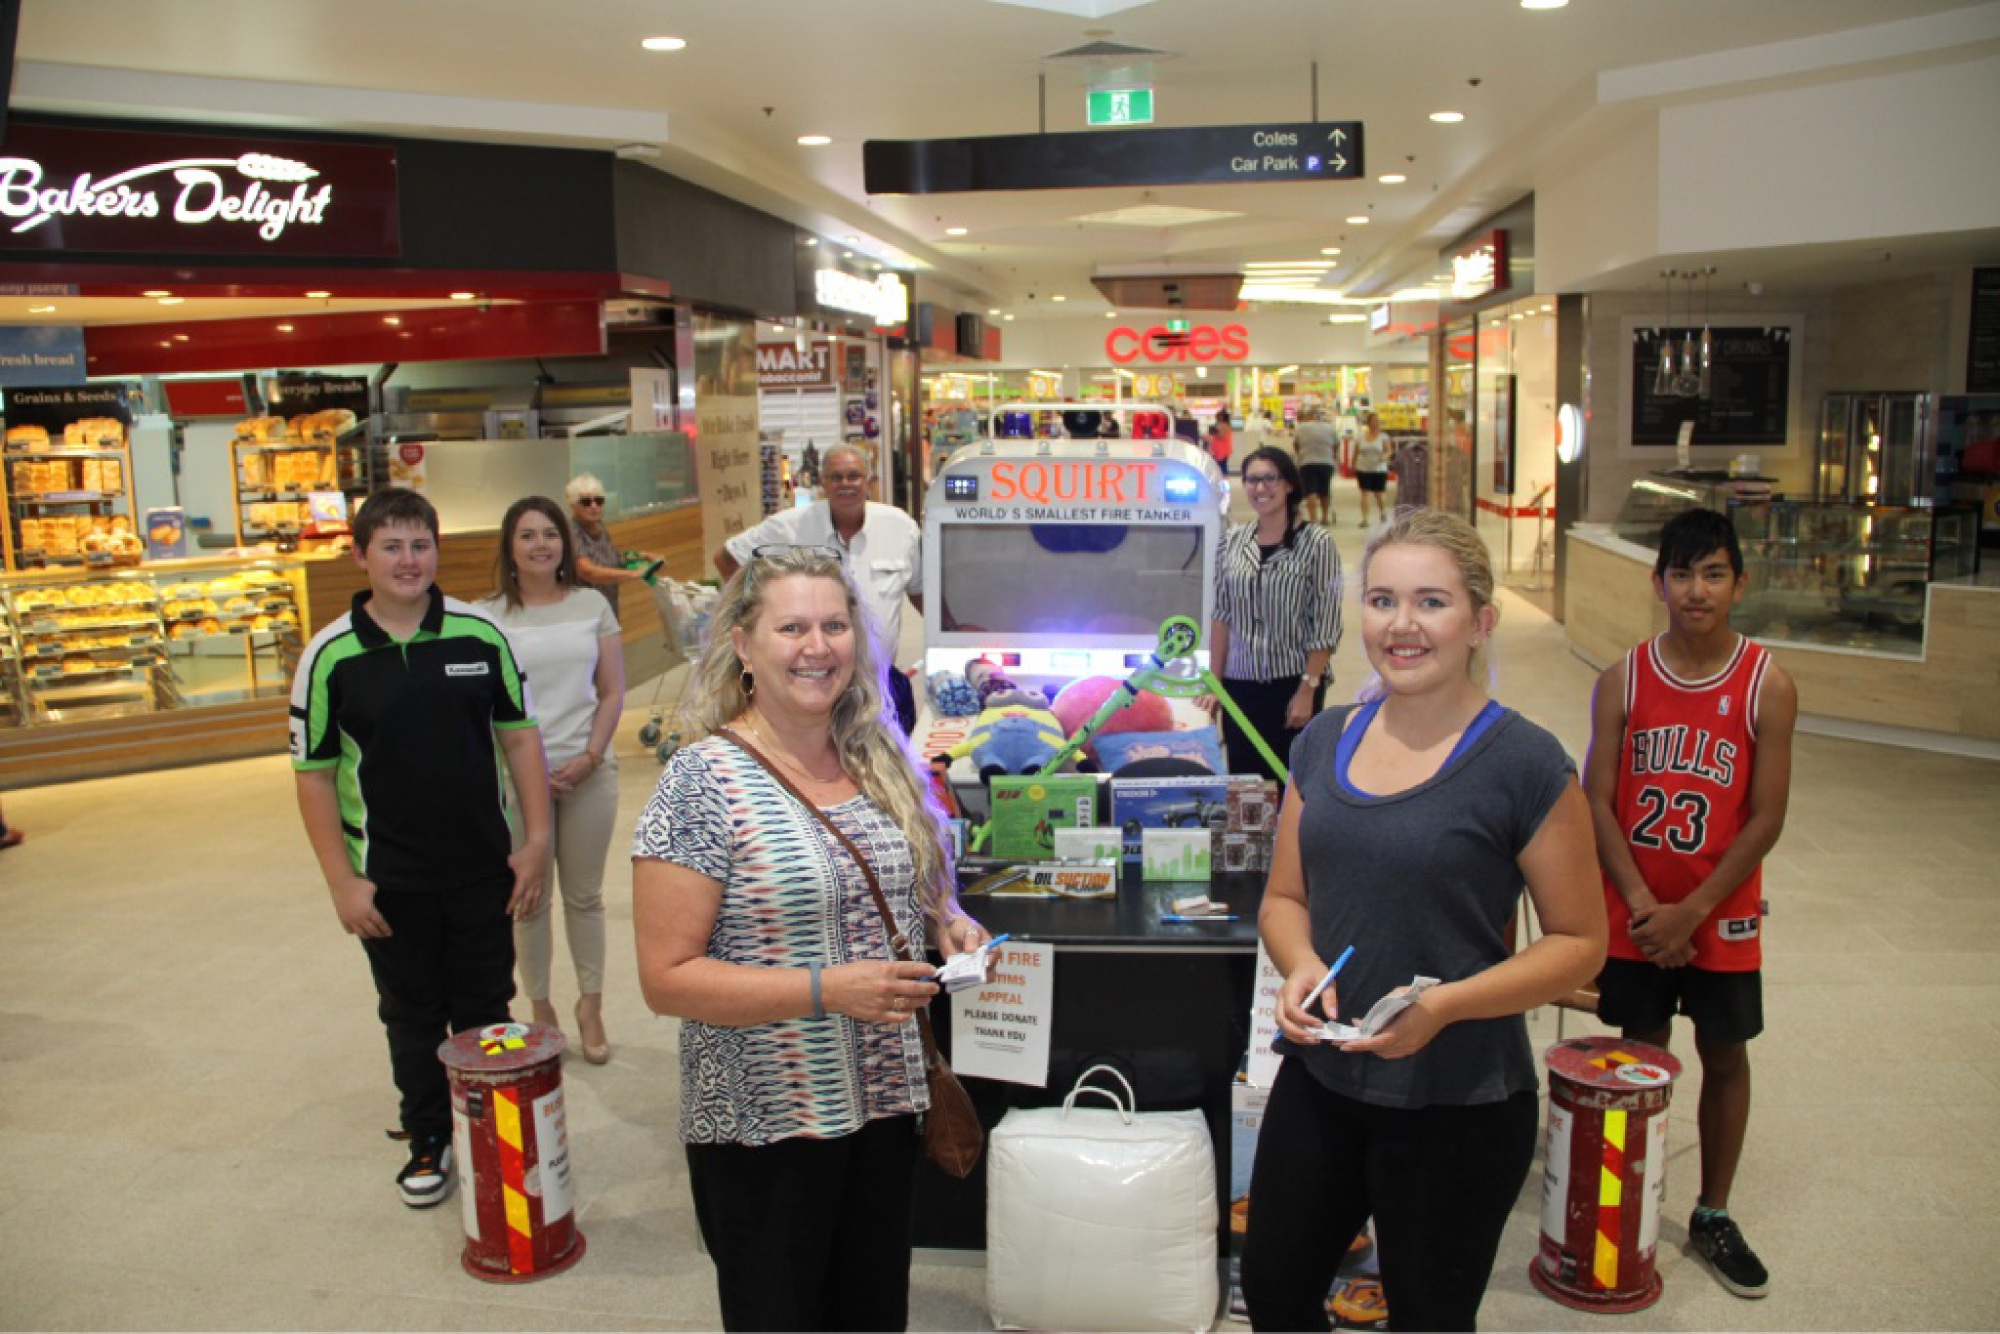 Back, from the left: Lachlan Billiard (14), Warnbro Centre manager Alison Broadbent, Laurie Drage and Warnbro Centre marketing manager Taryn Palermo. Front, from the left: shoppers Annabelle and Rebekah Gradussov and Suriyou Leigh Sandrini (15).